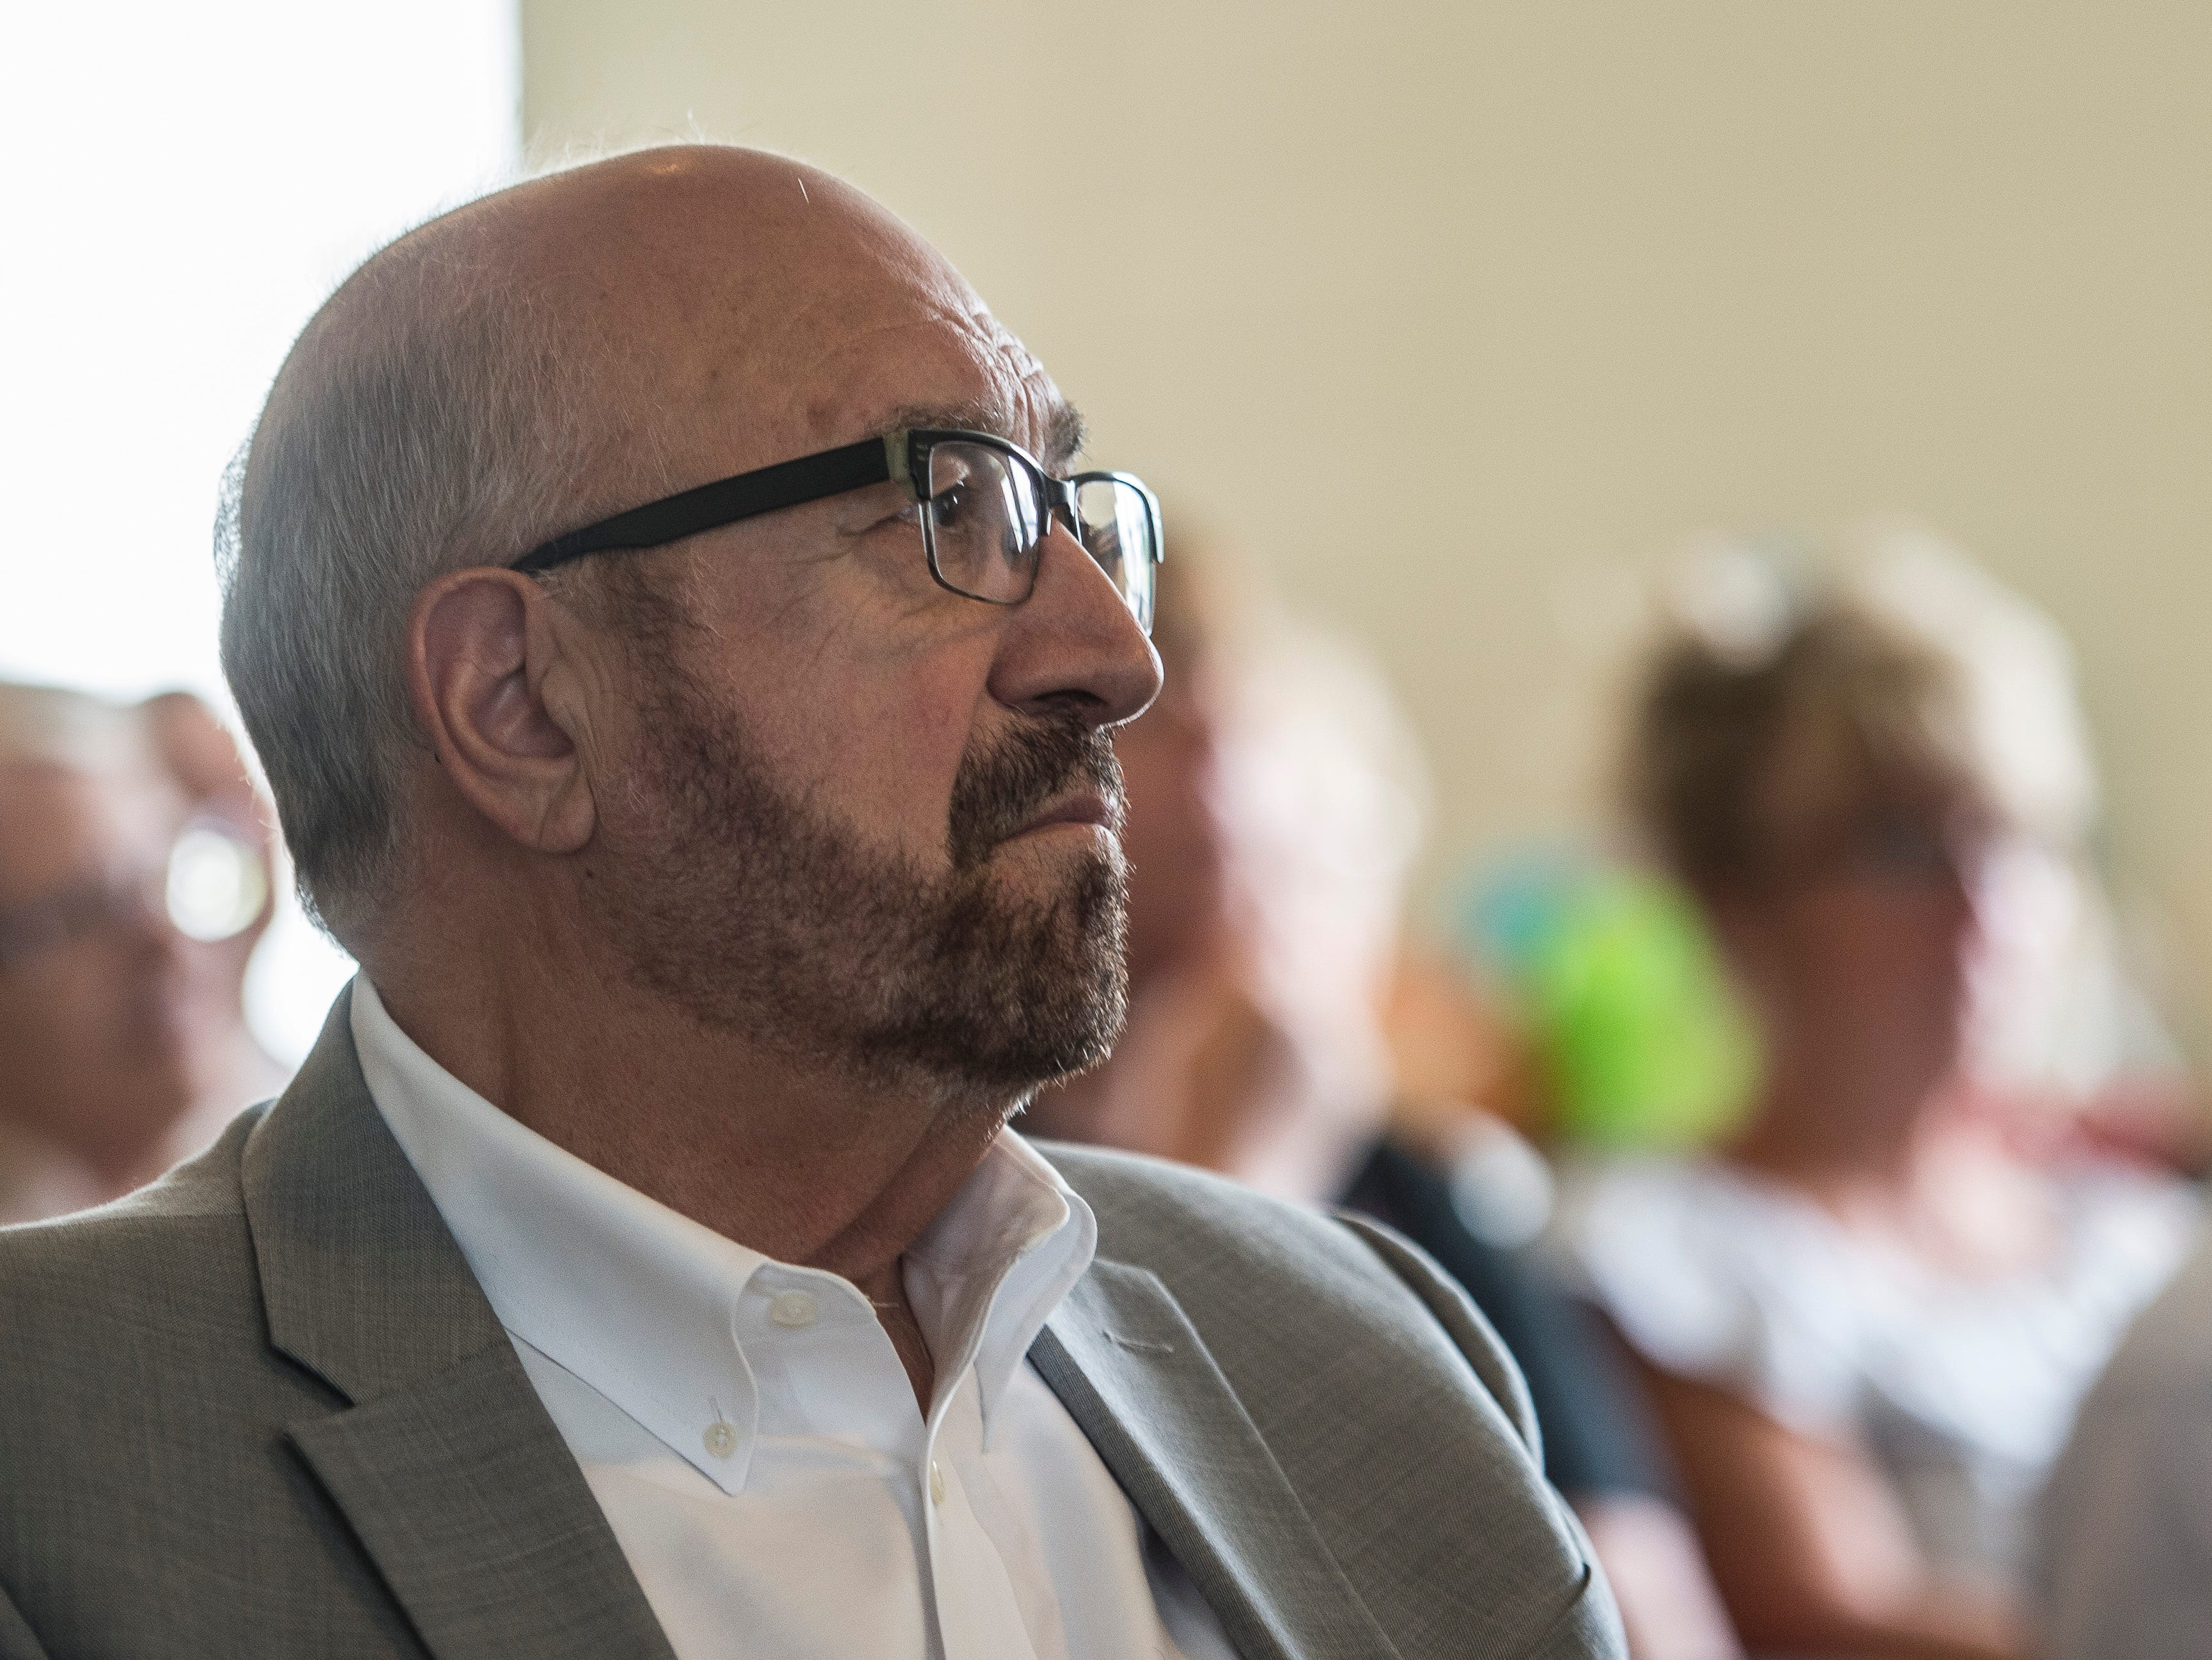 A man listens during a news conference celebrating the opening of the Winchester House, a new drug treatment facility for women, in Winchester, Ind., on Wednesday, Aug. 1, 2018.